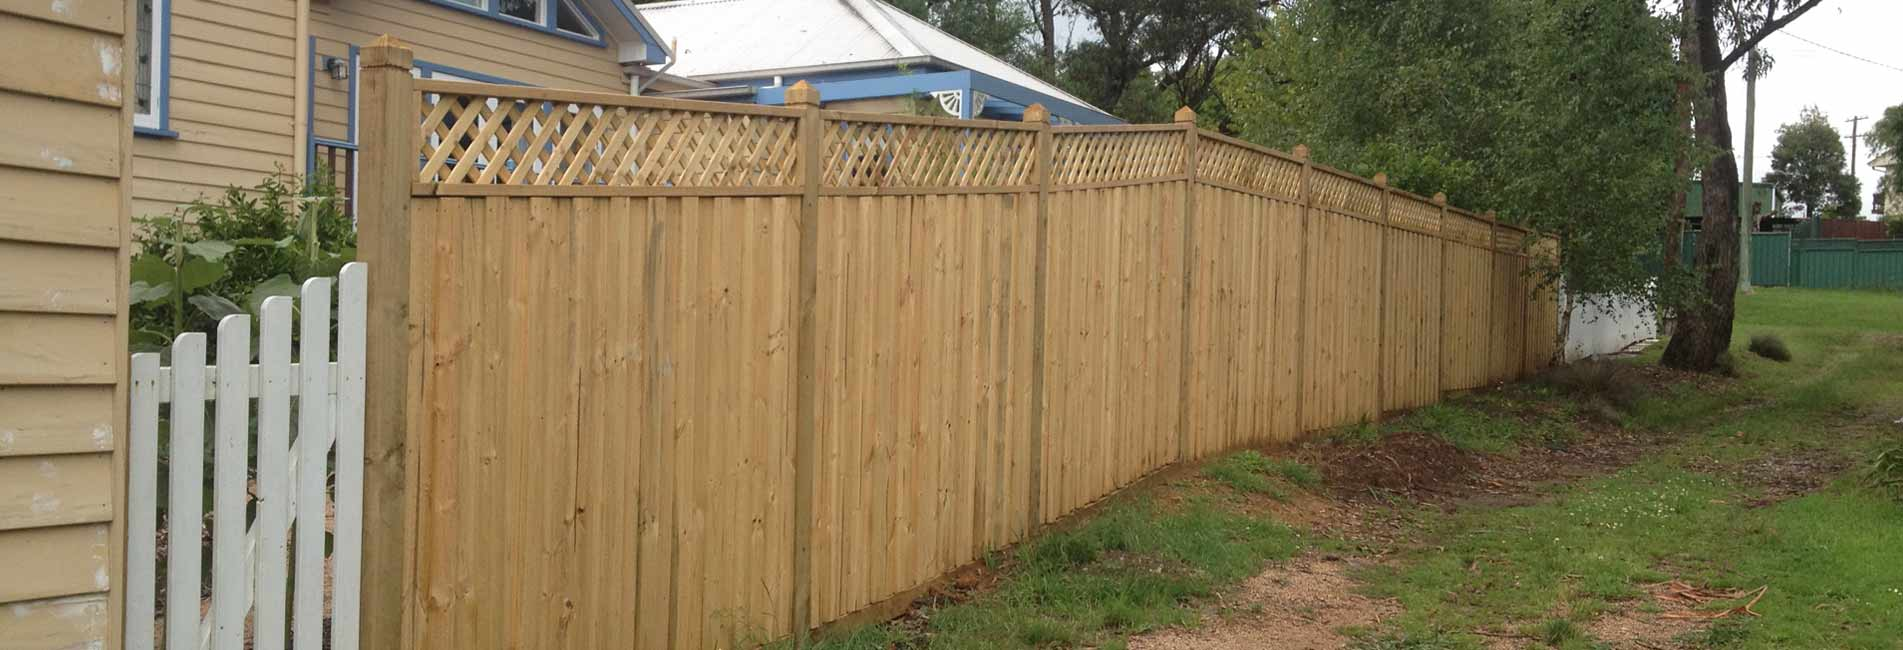 Fencing Wentworth Falls, Timber Fencing Katoomba, Picketing Bullaburra